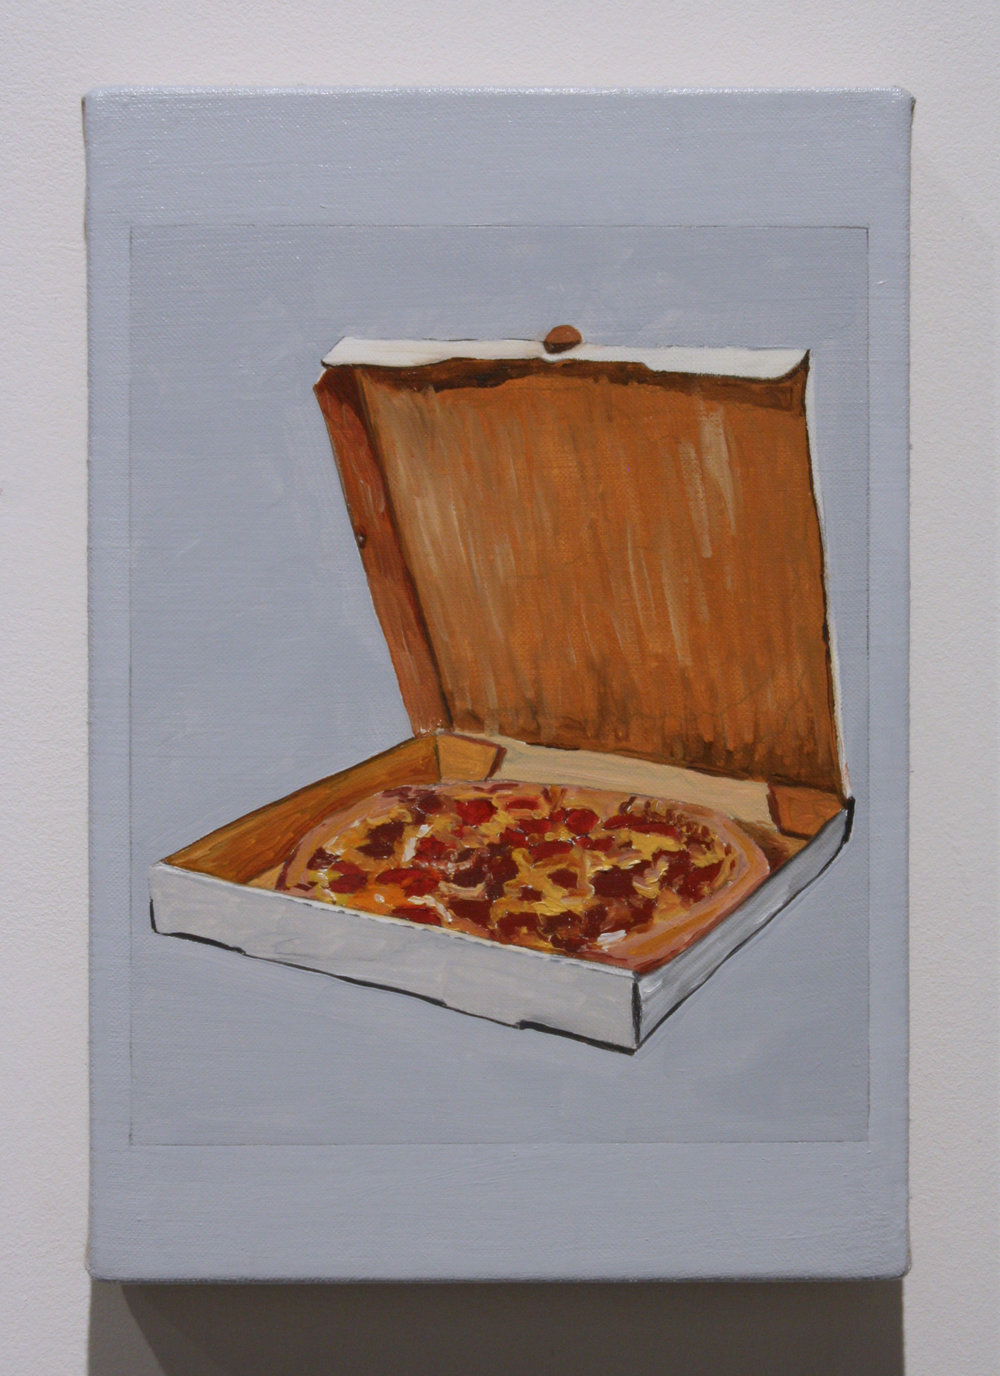 """Untitled, (Pizza)"", 2016 , oil on linen, 12 x 8 inches"